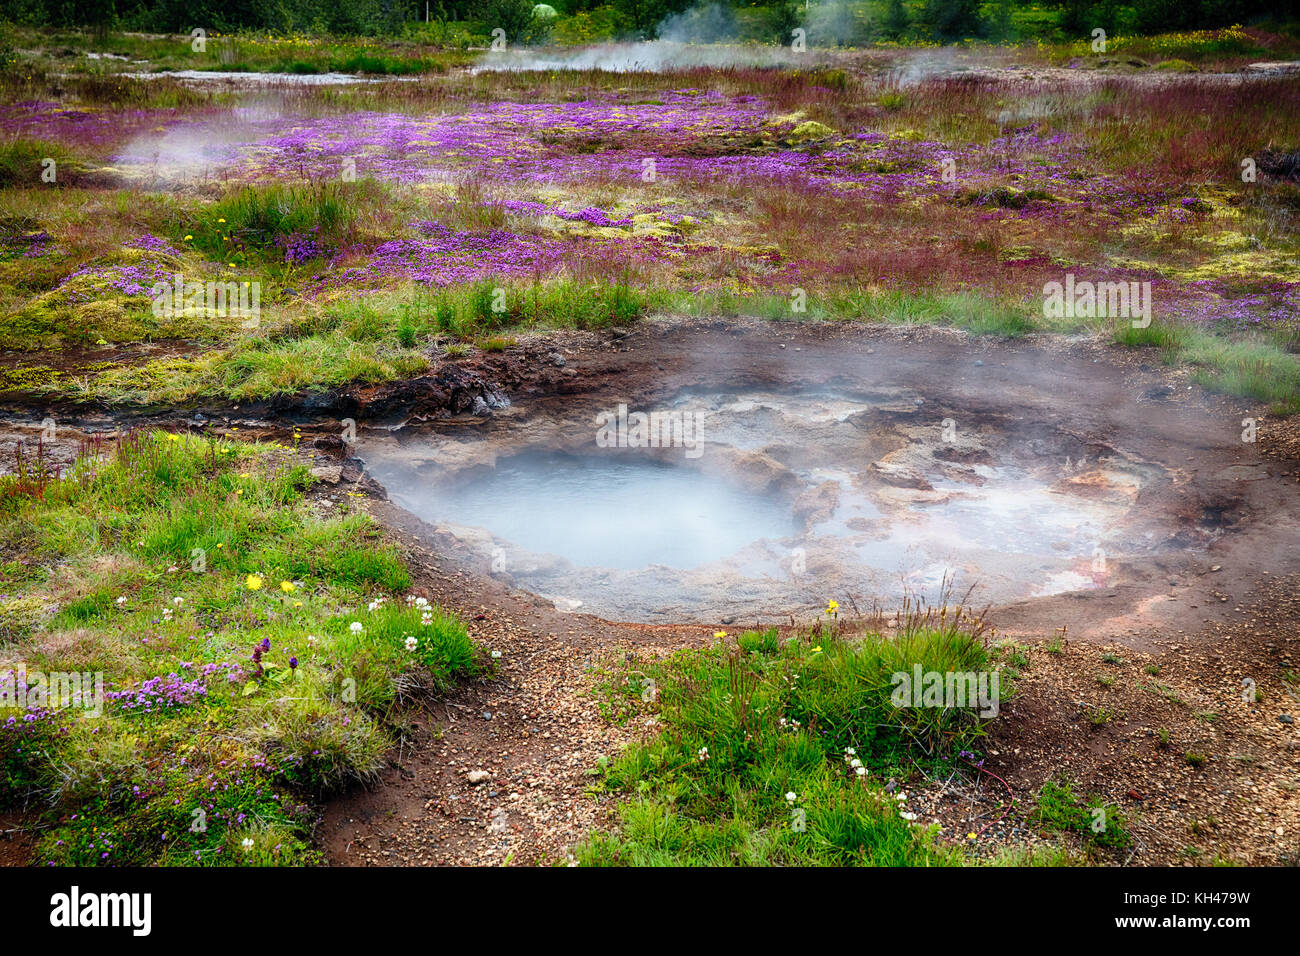 Close Up View of a Meadow with Steaming Hot Springs, Haukadalur Valley, Southern Iceland Stock Photo